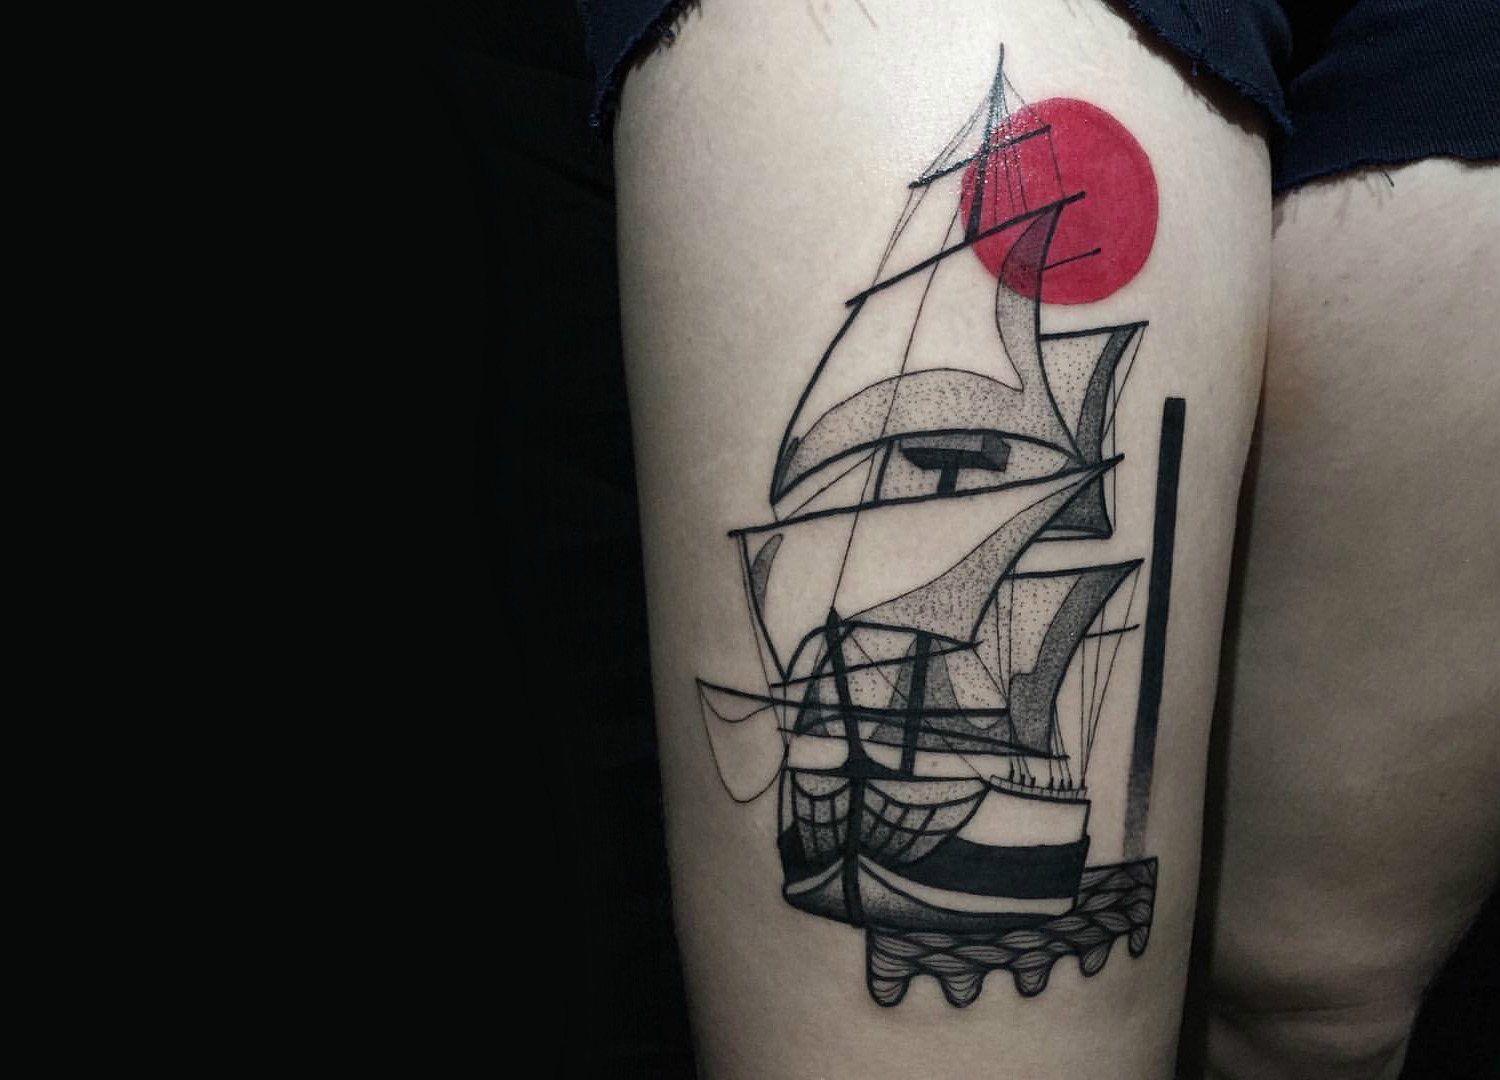 Sailing ship illustration tattoo by Kat Alden